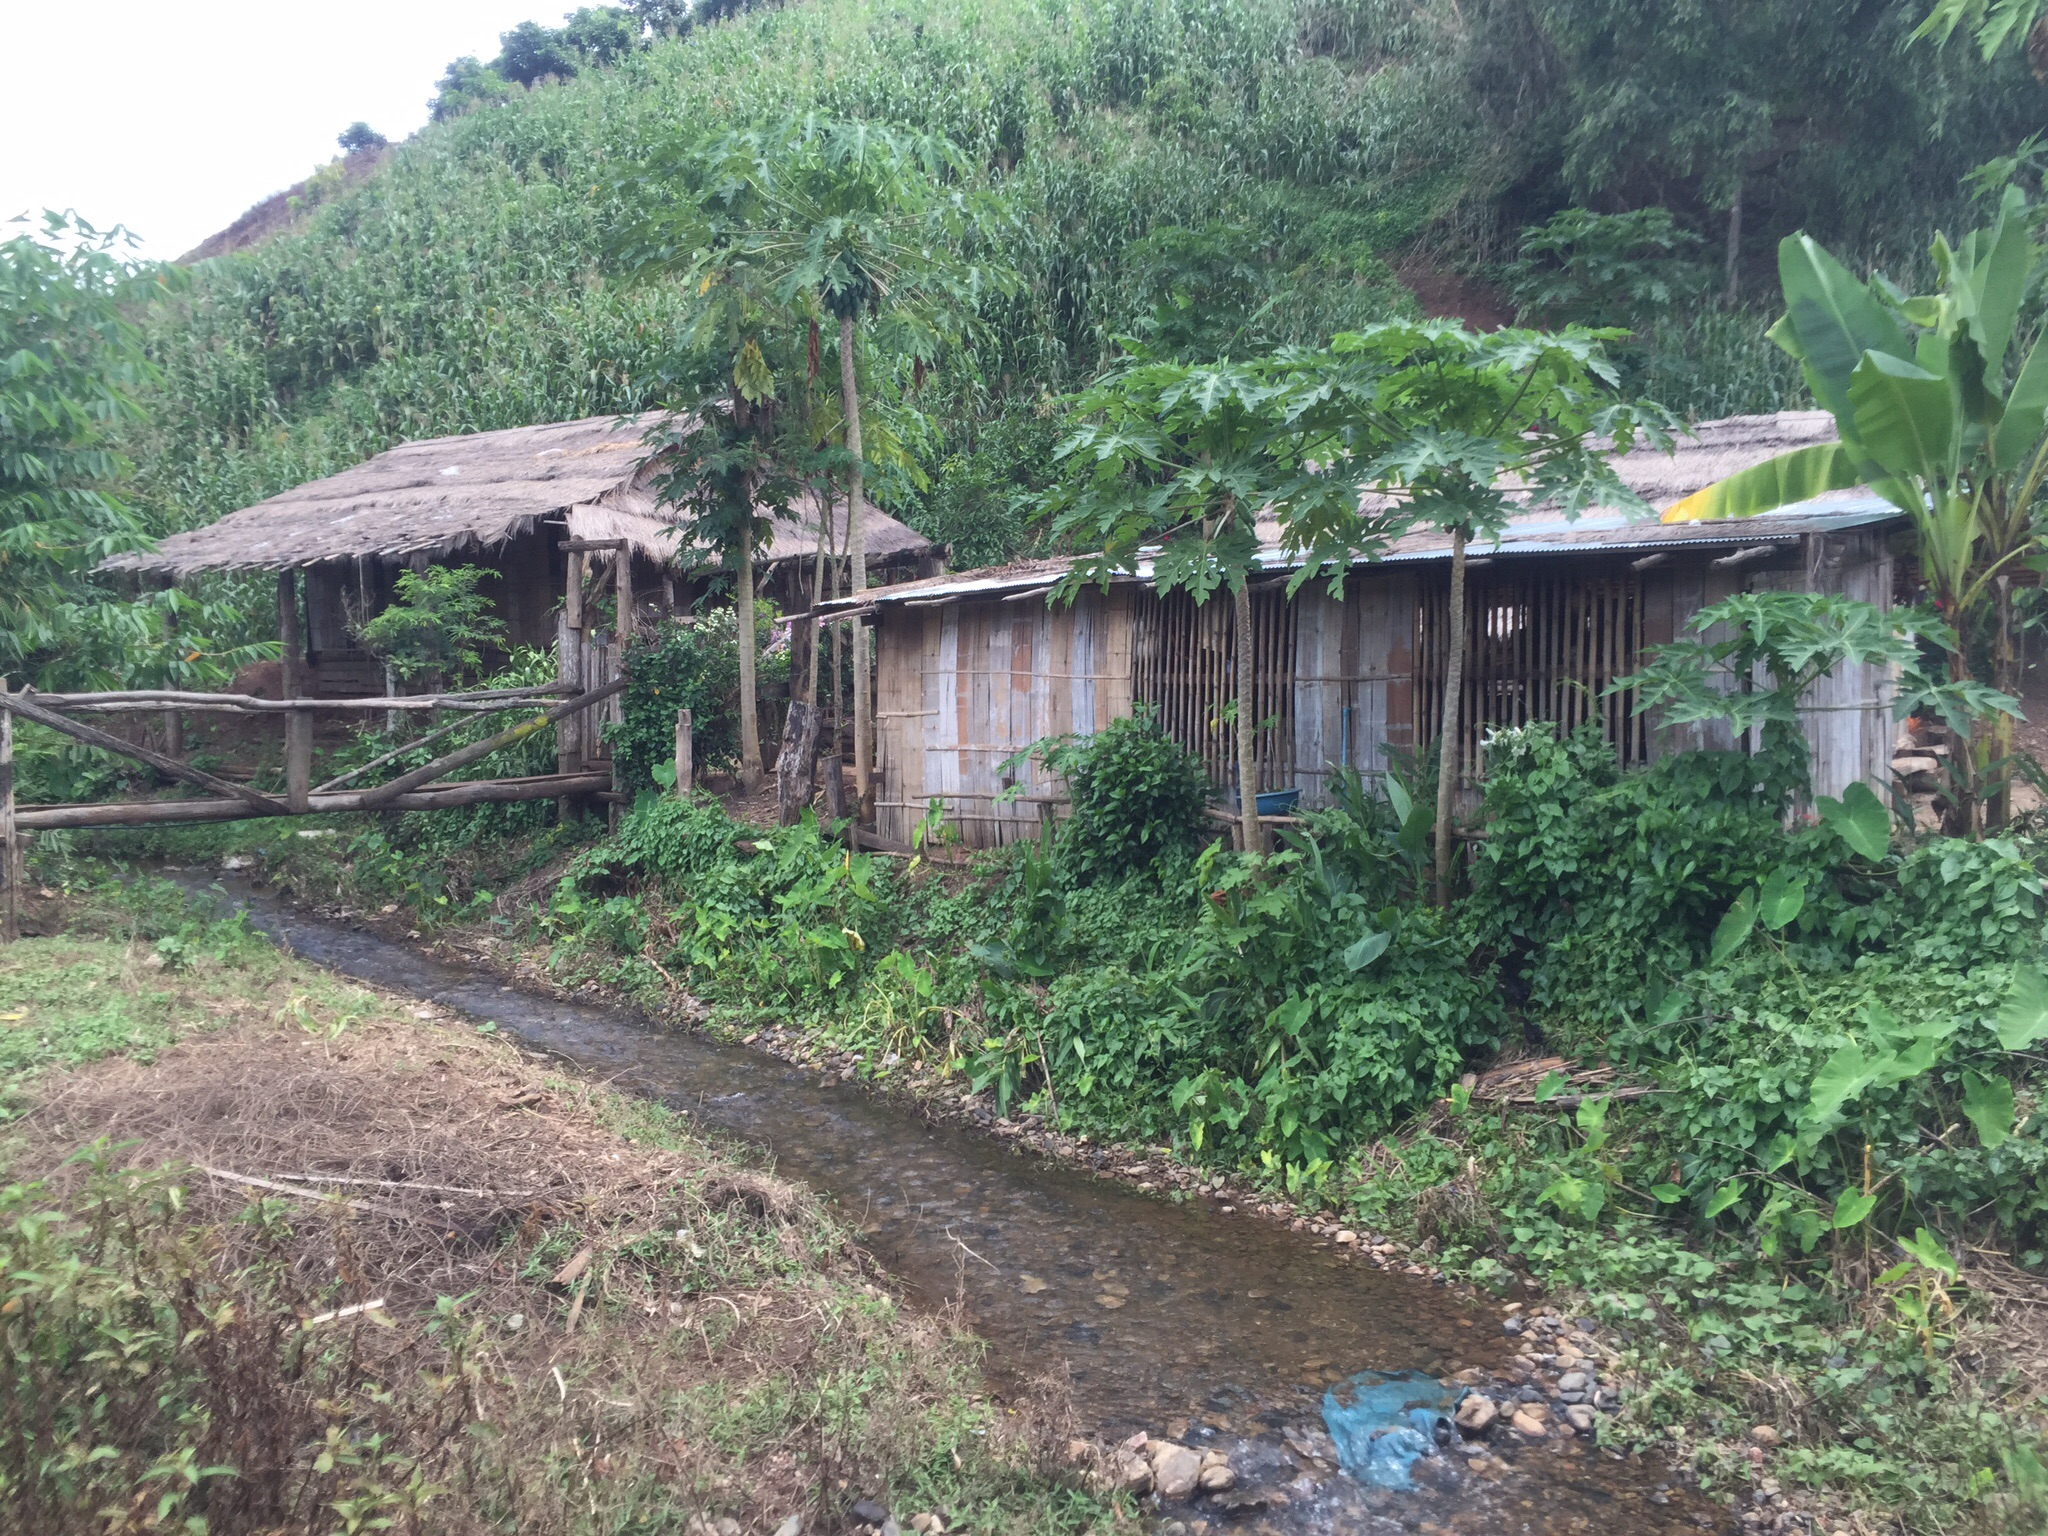 Hill tribe houses by a small stream along the hike.